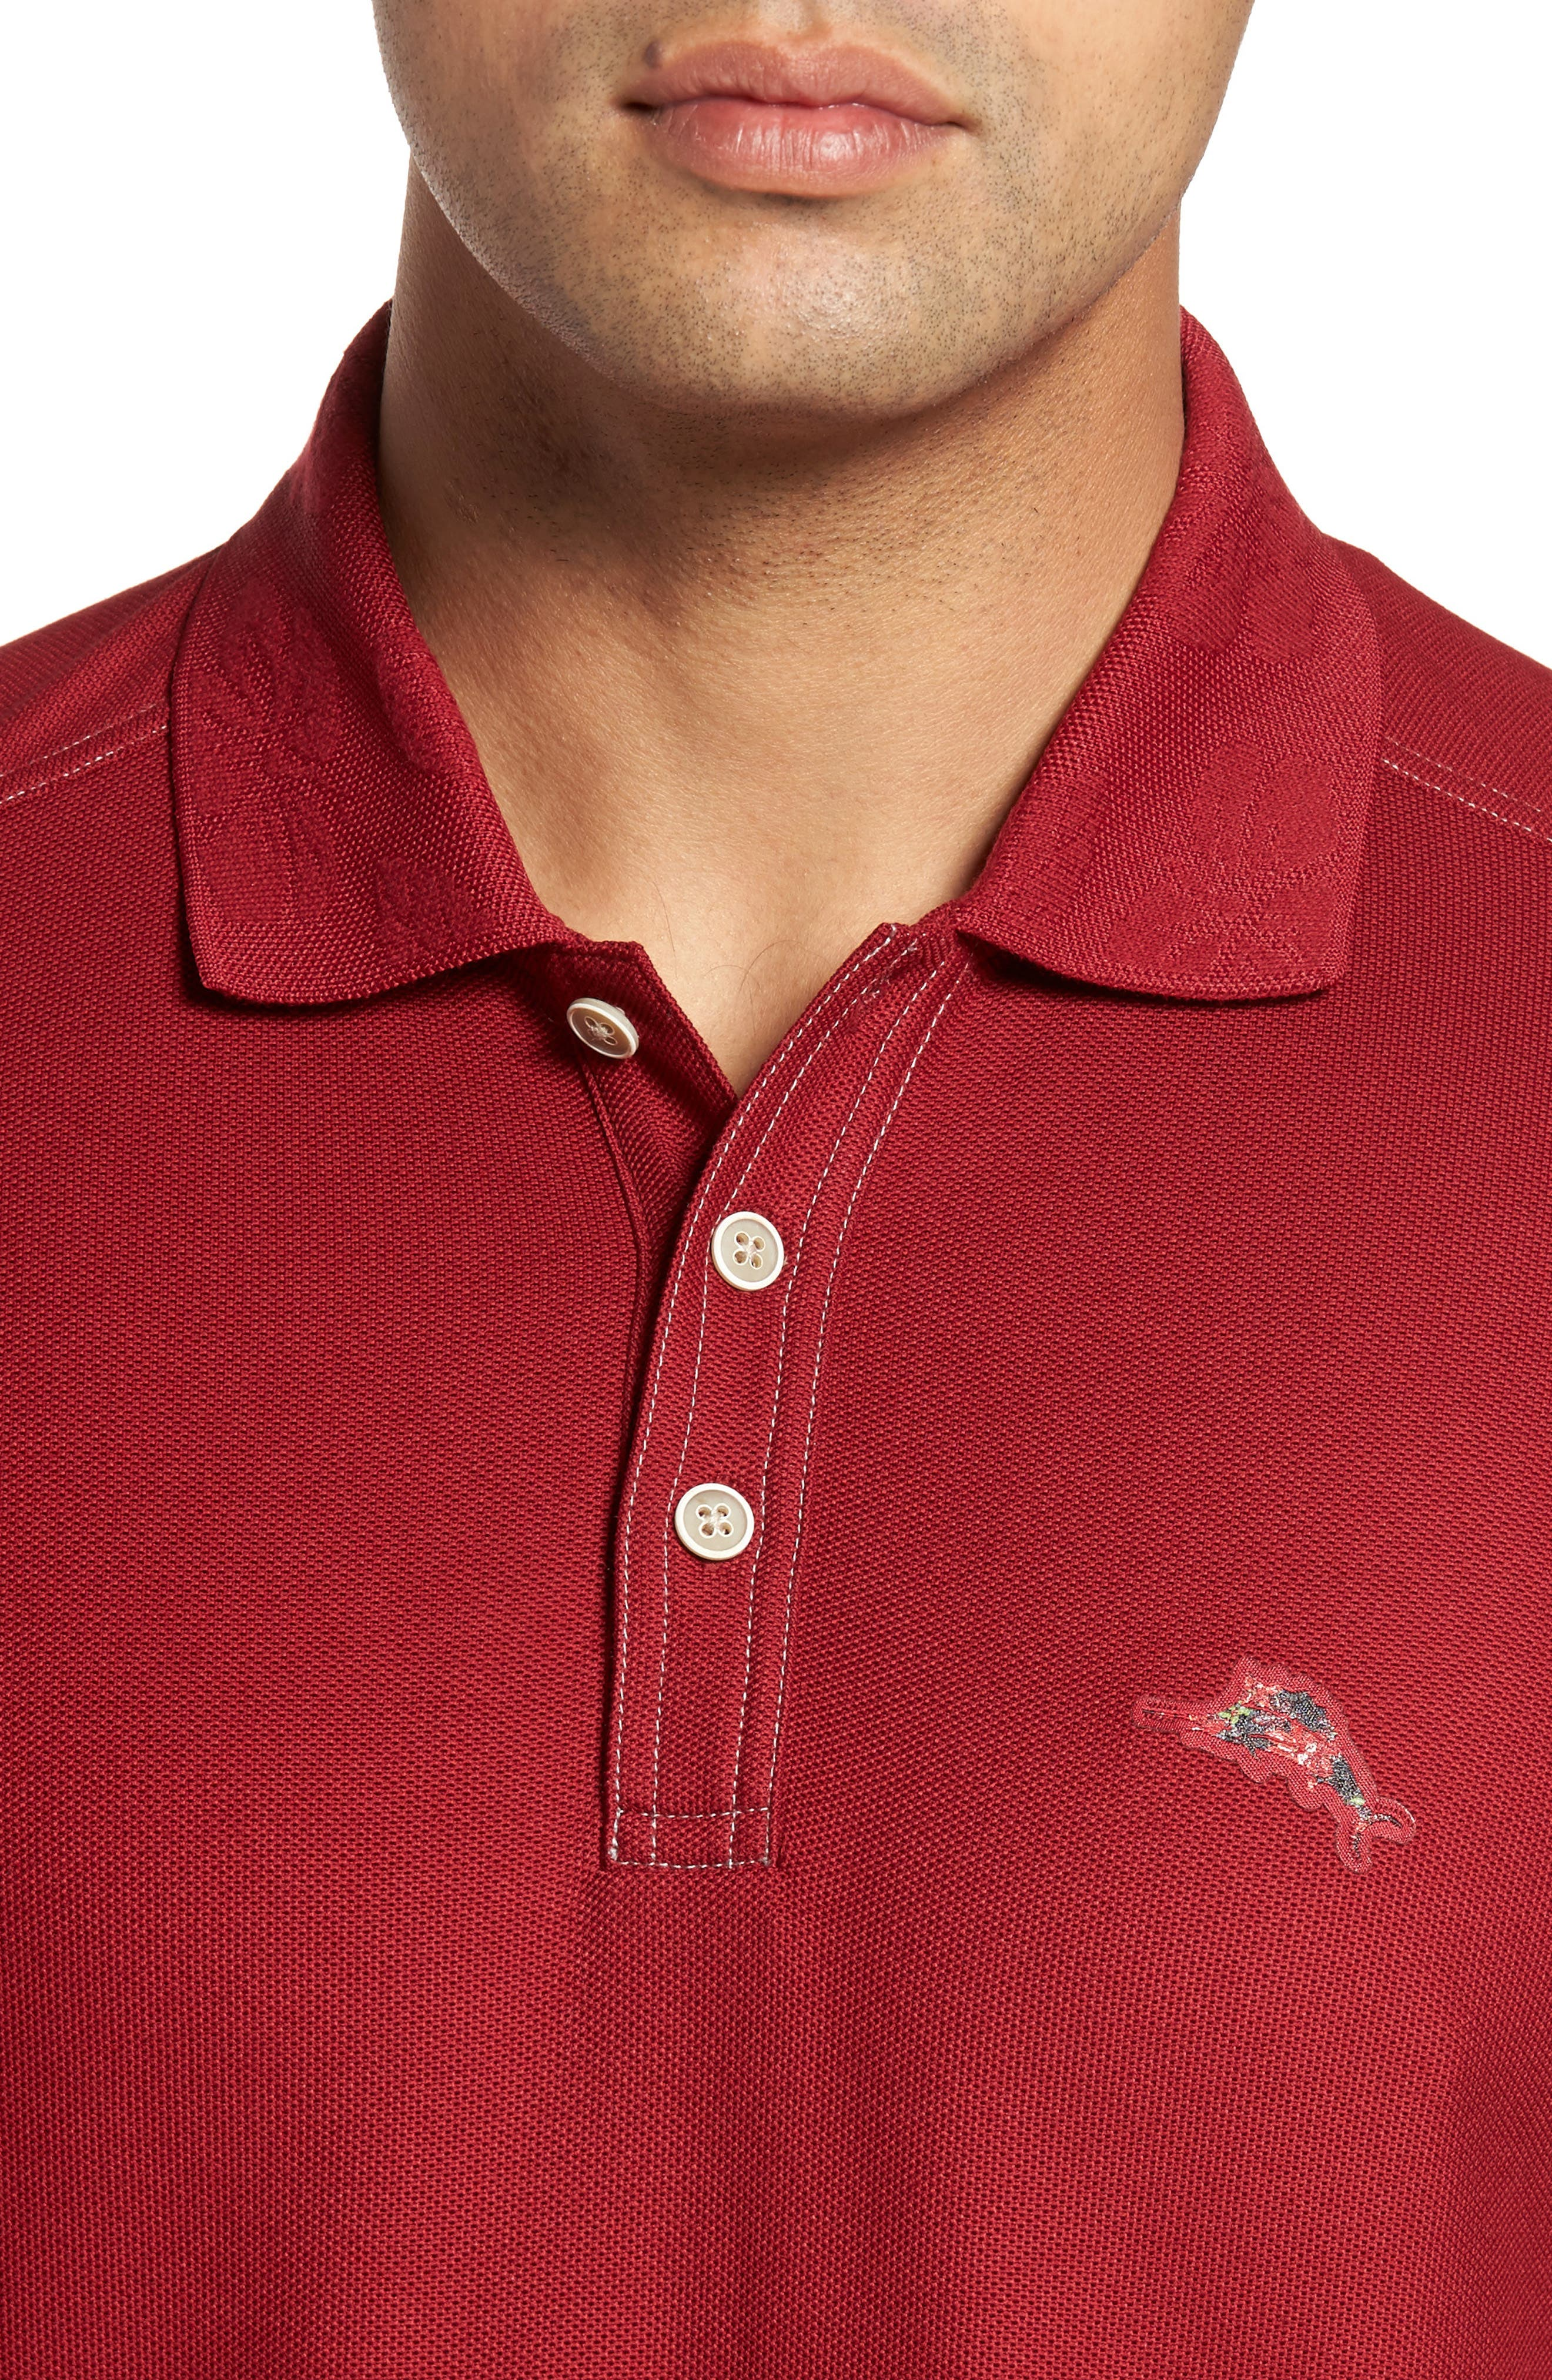 Alternate Image 4  - Tommy Bahama Limited Edition Poinsettia Emfielder Piqué Polo